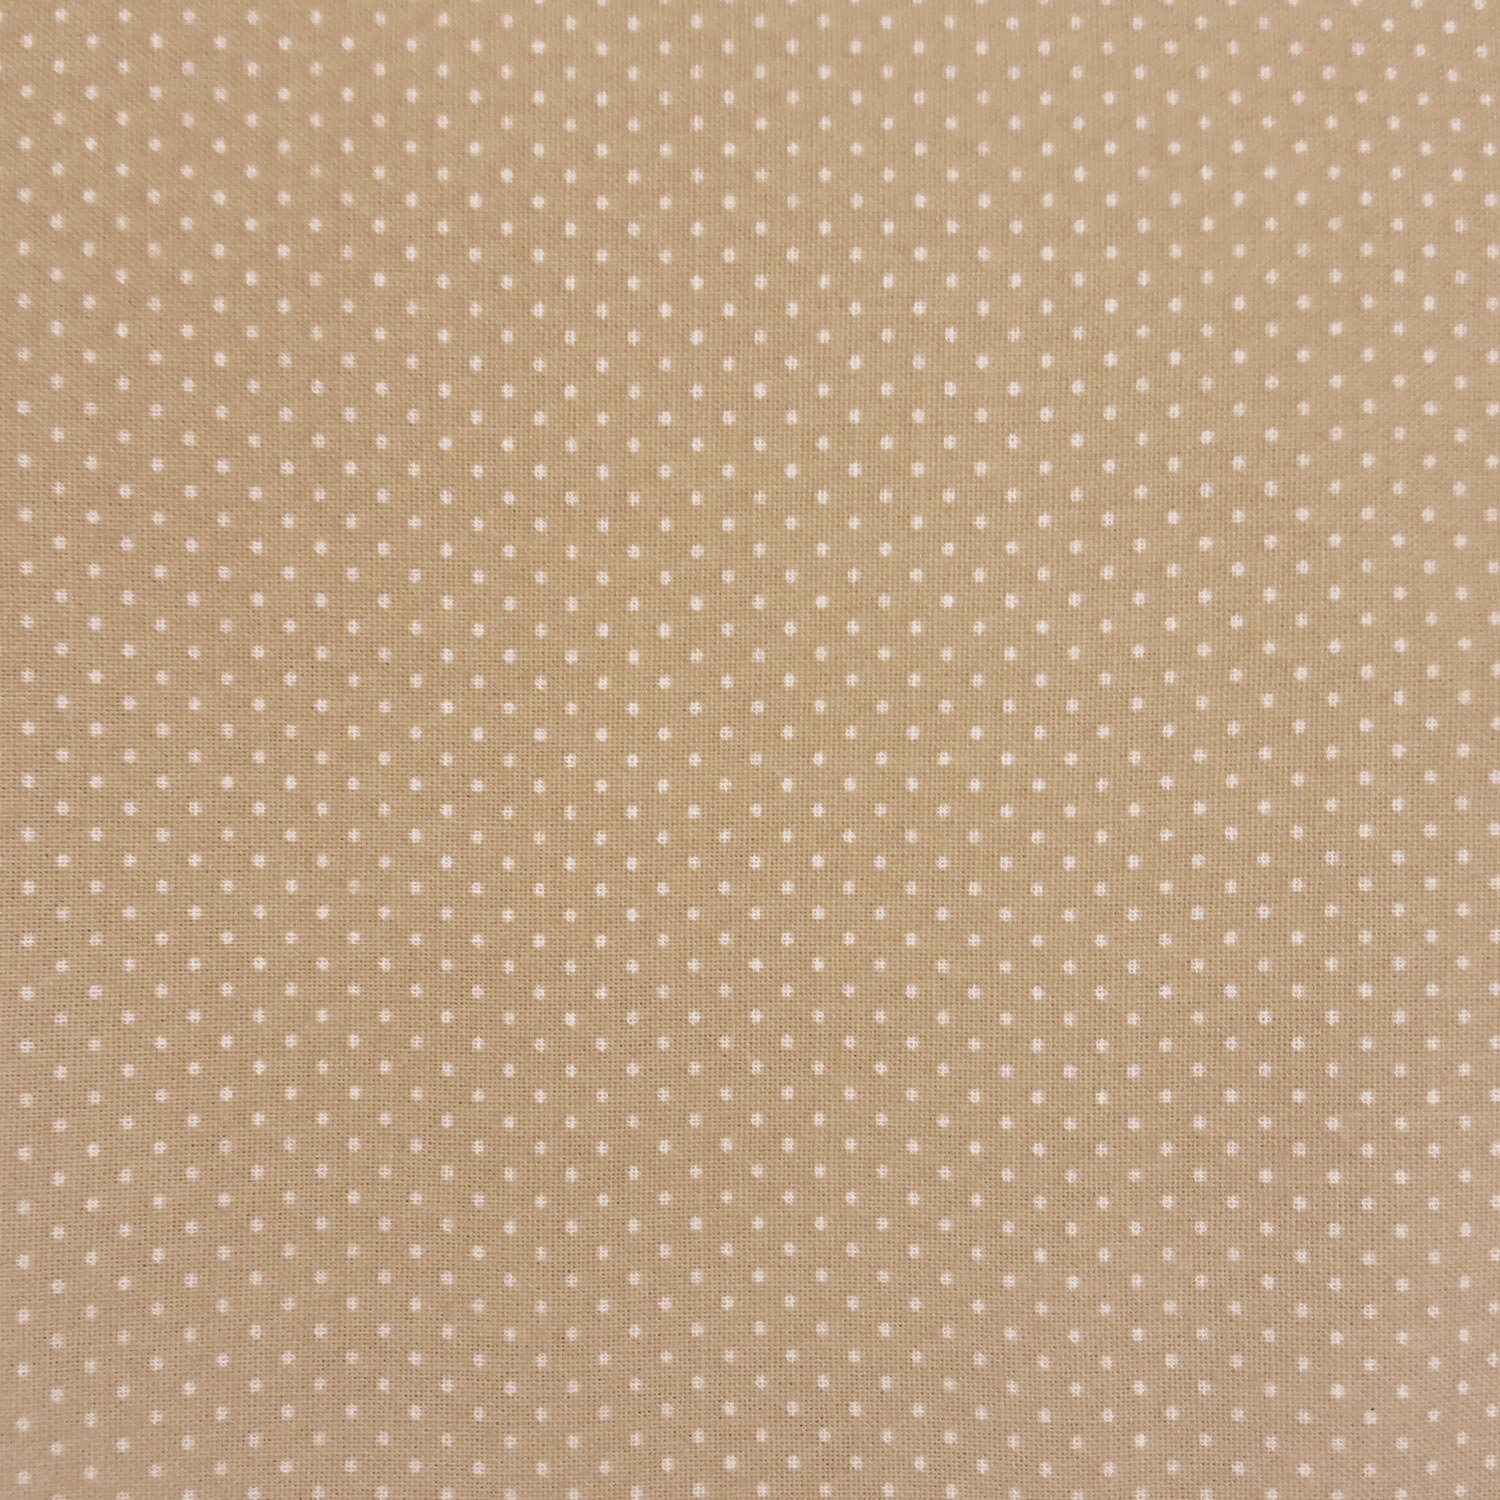 Fabric Palette Fat Quarter <br>Tan - Design may vary <br>MD-G-PC364